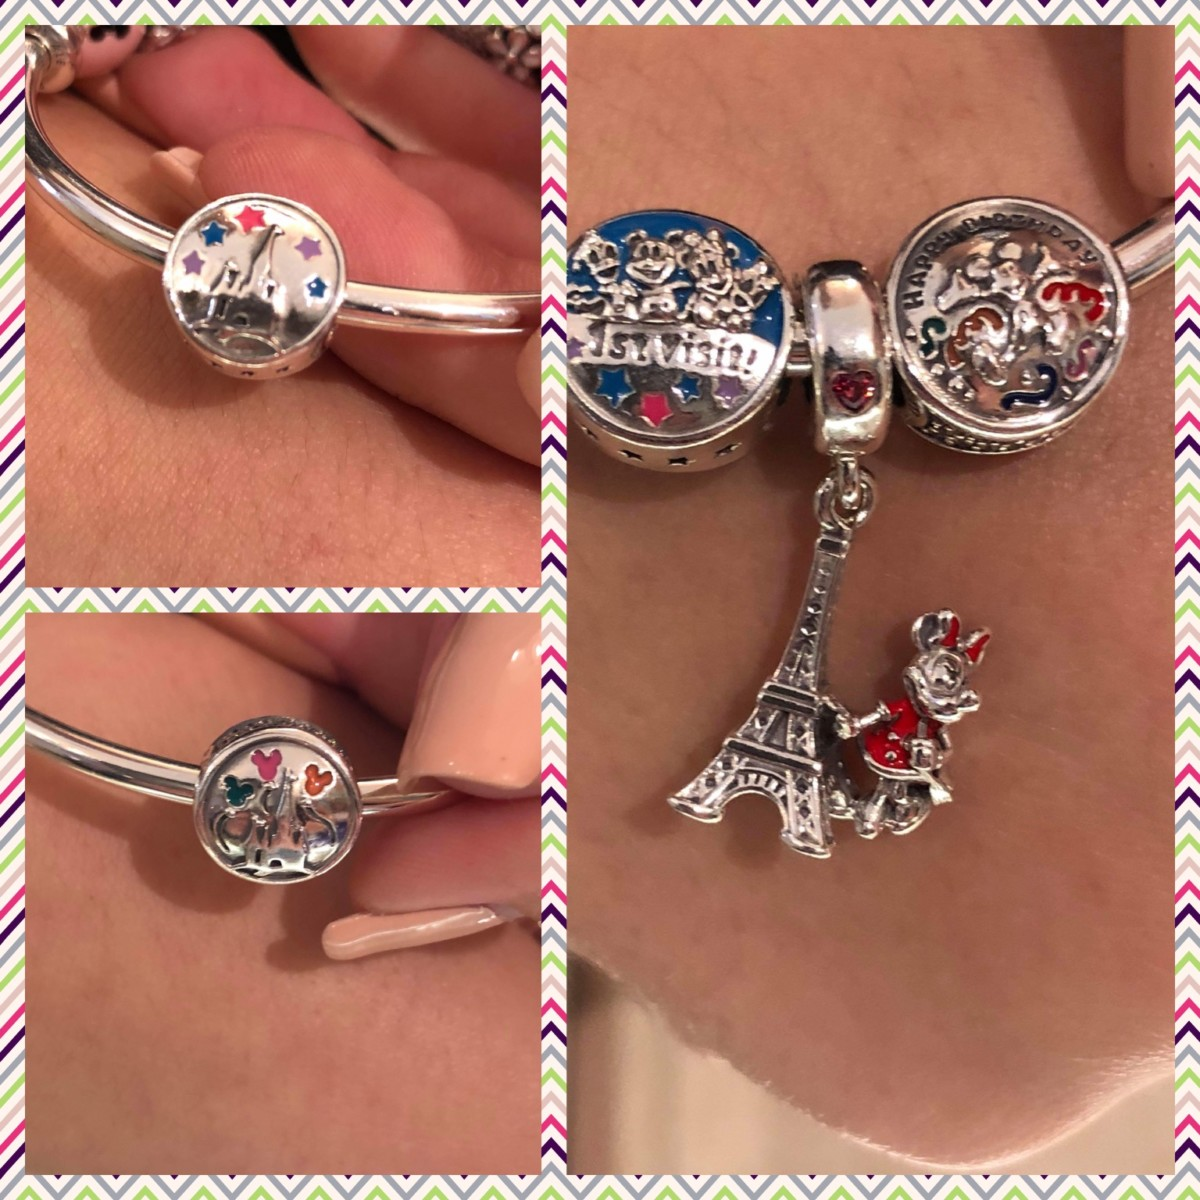 New Disney Pandora Charms Out Today! 11